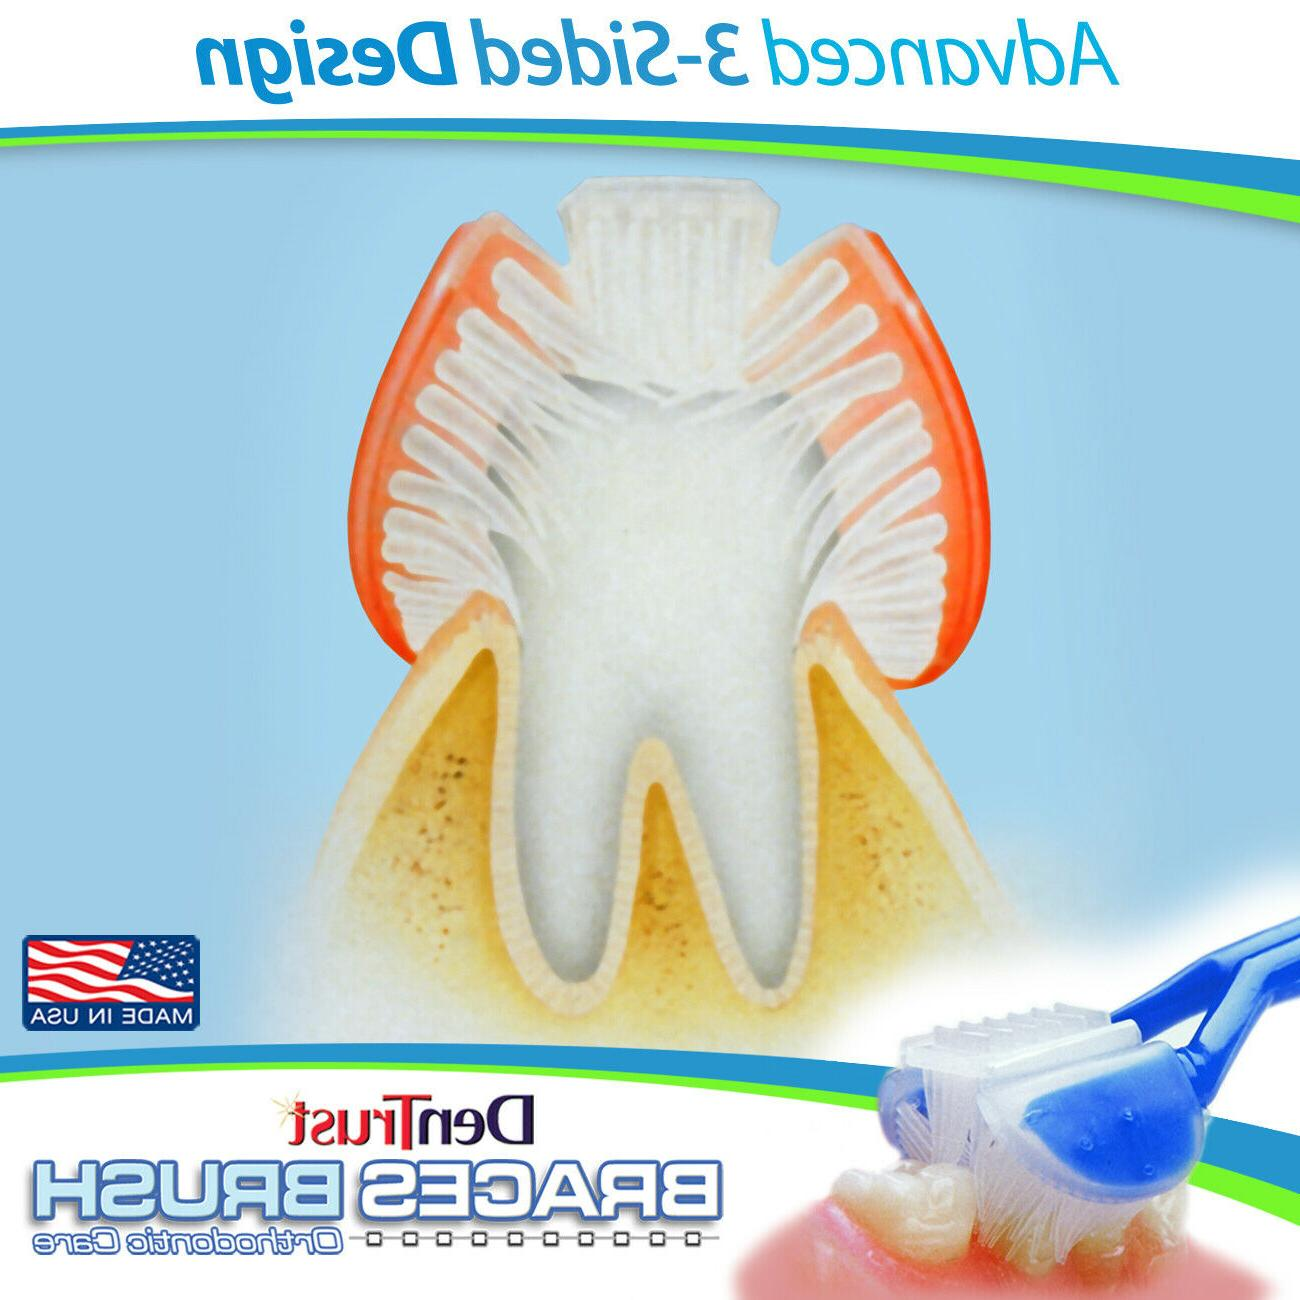 DenTrust Toothbrush :: Orthodontic Care ~ CLINICALLY PROVEN